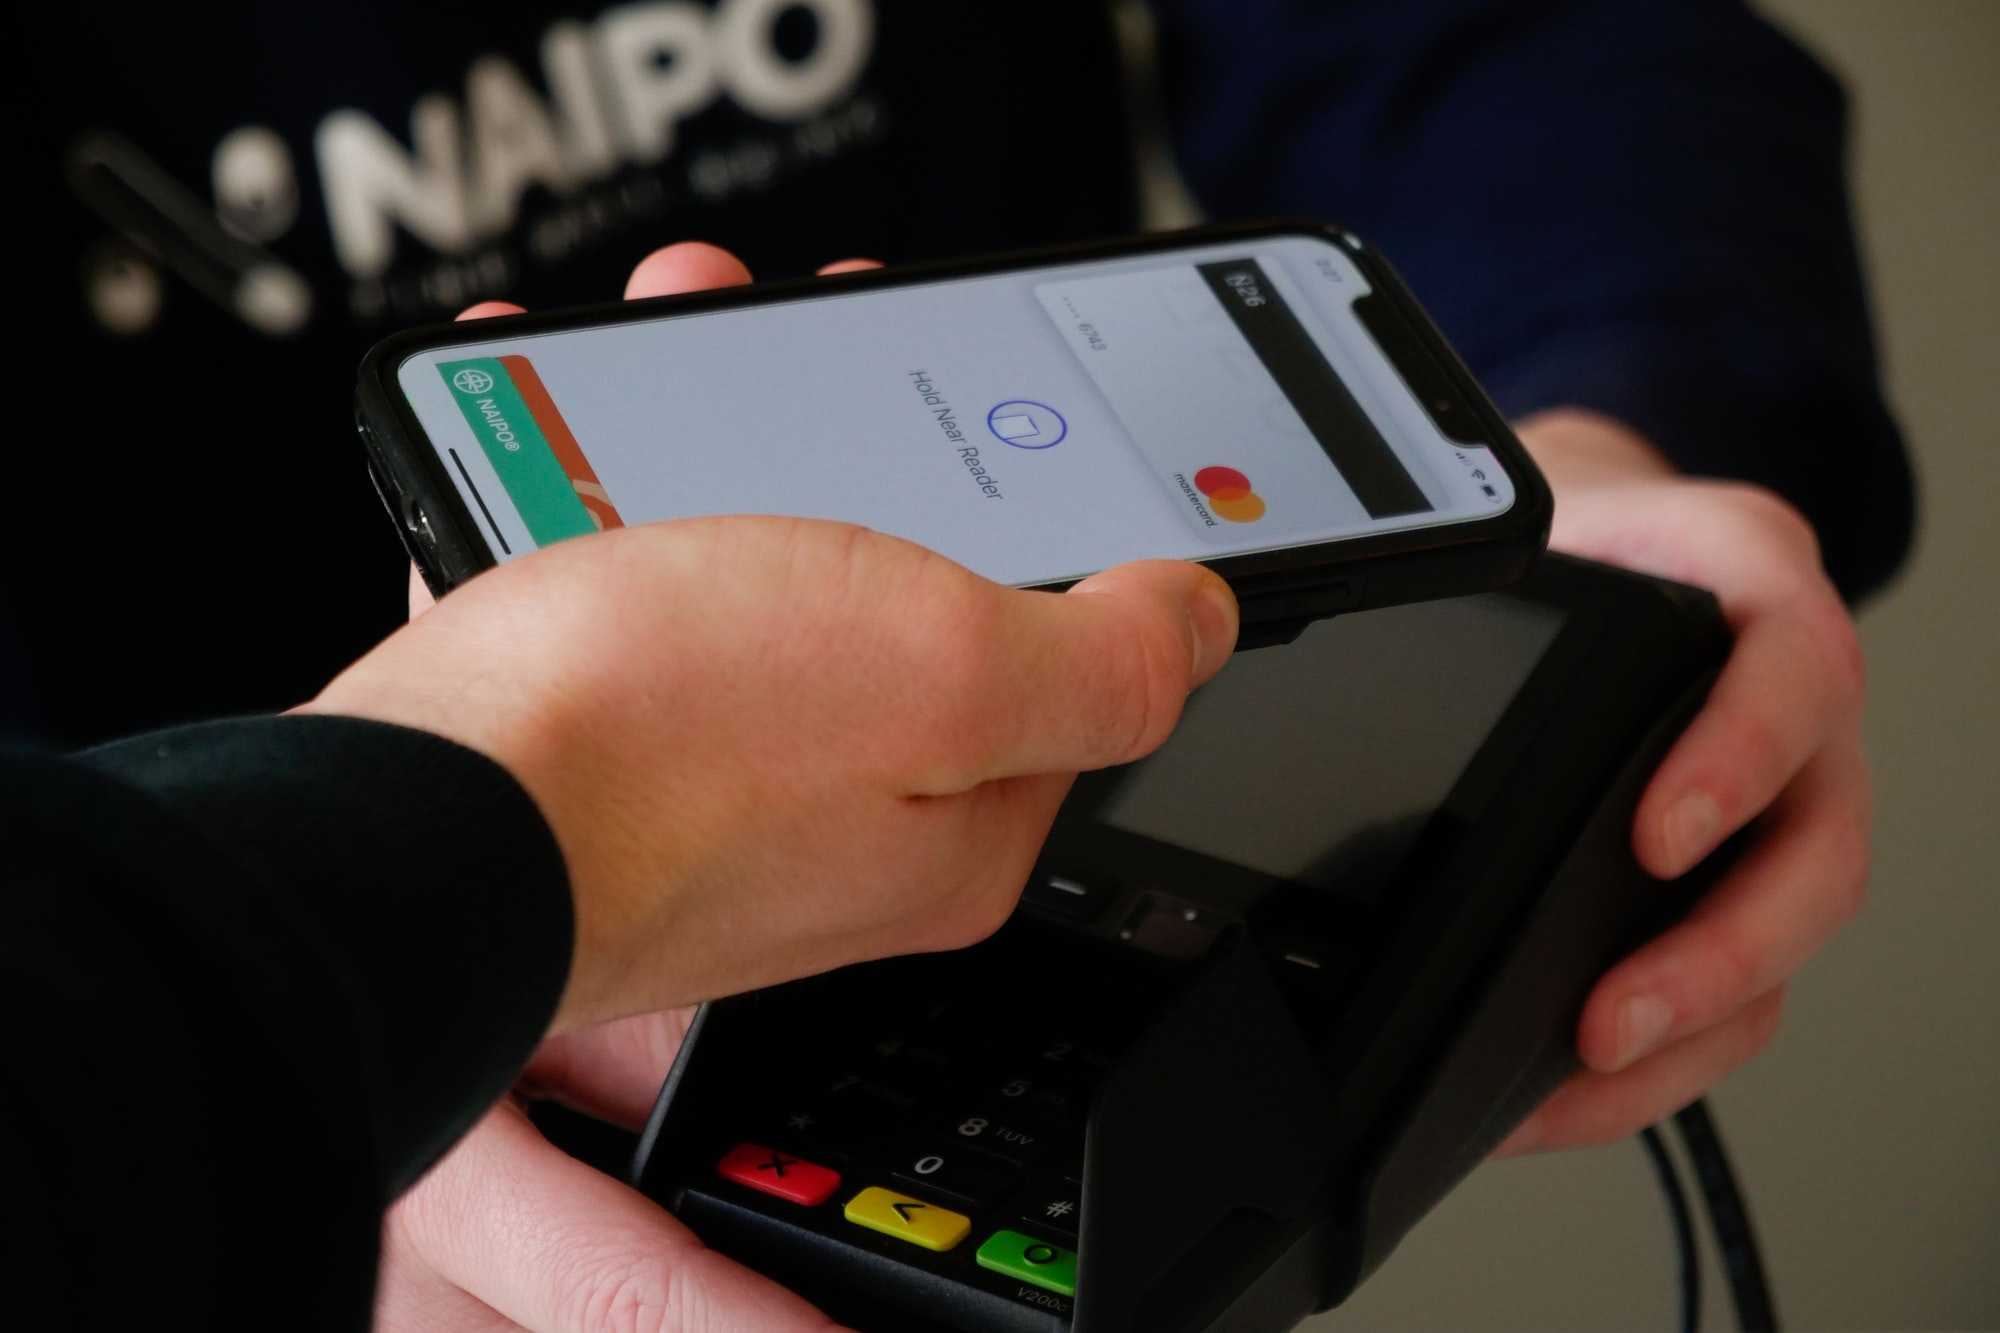 As Israel prepares for Apple Pay, Israeli money transfer app Bit launches new digital wallet